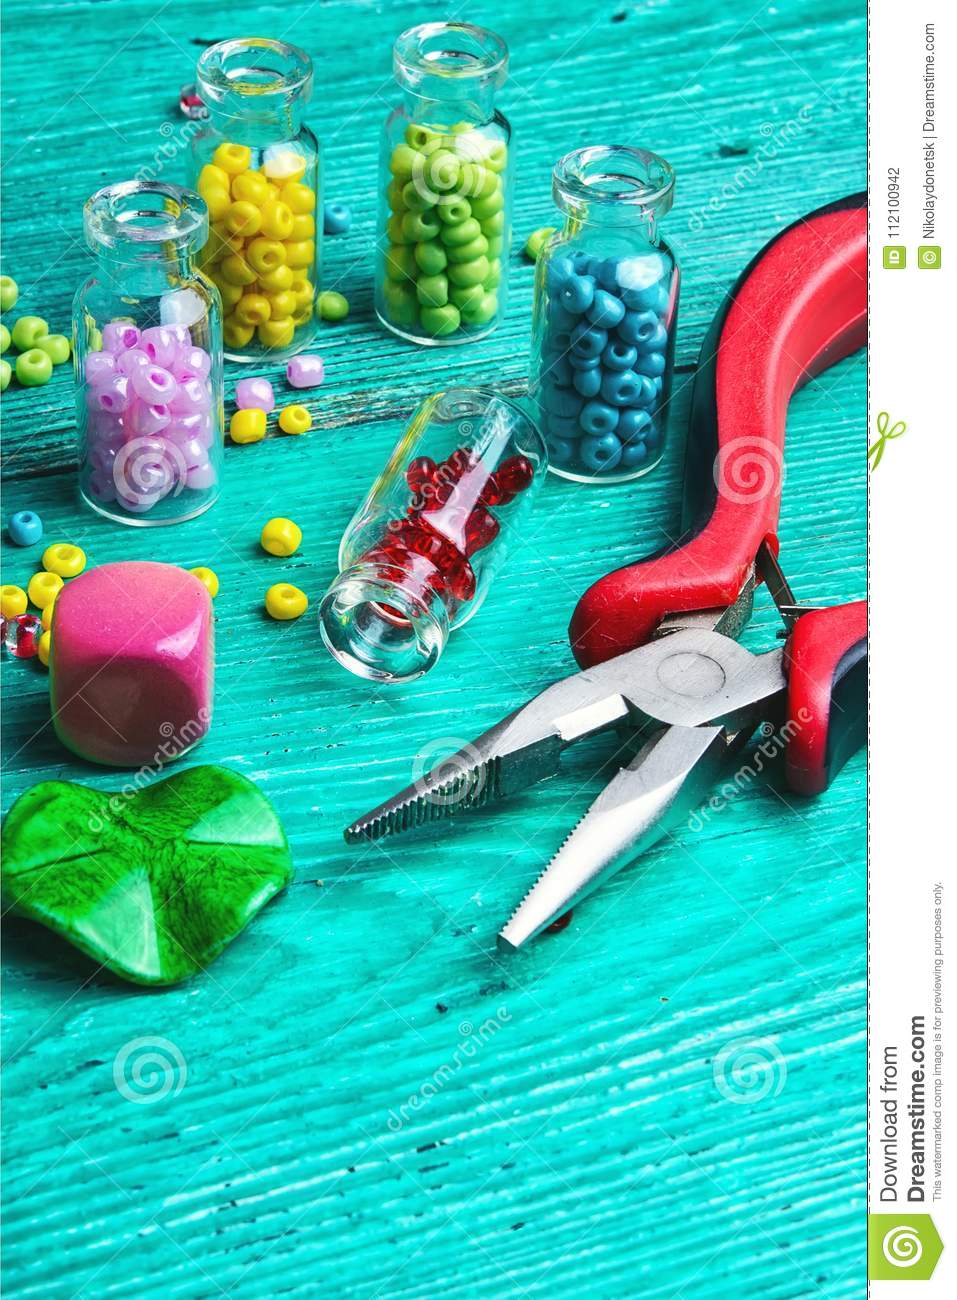 Hobby crafts of beads stock photo  Image of design, homemade